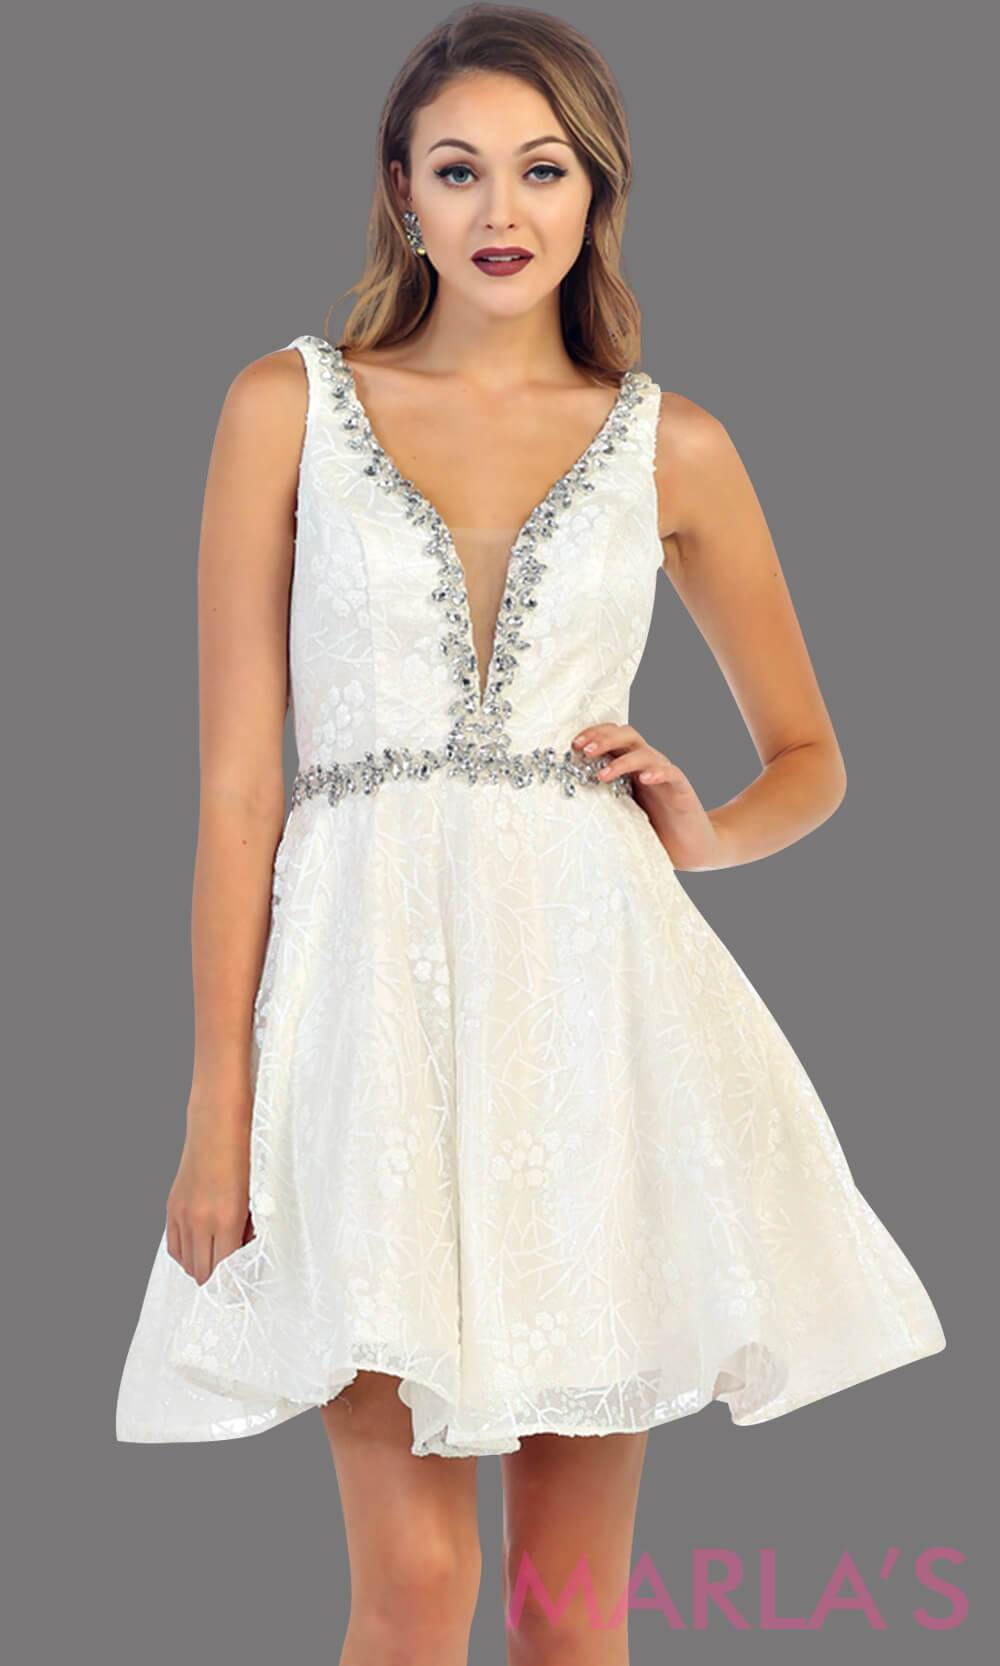 7438-Short white dress with deep V neck and back. This is a perfect grade 8 grad dress, graduation dress, white bridal shower, short wedding dress, short prom dress or even damas dress. Available in plus sizes